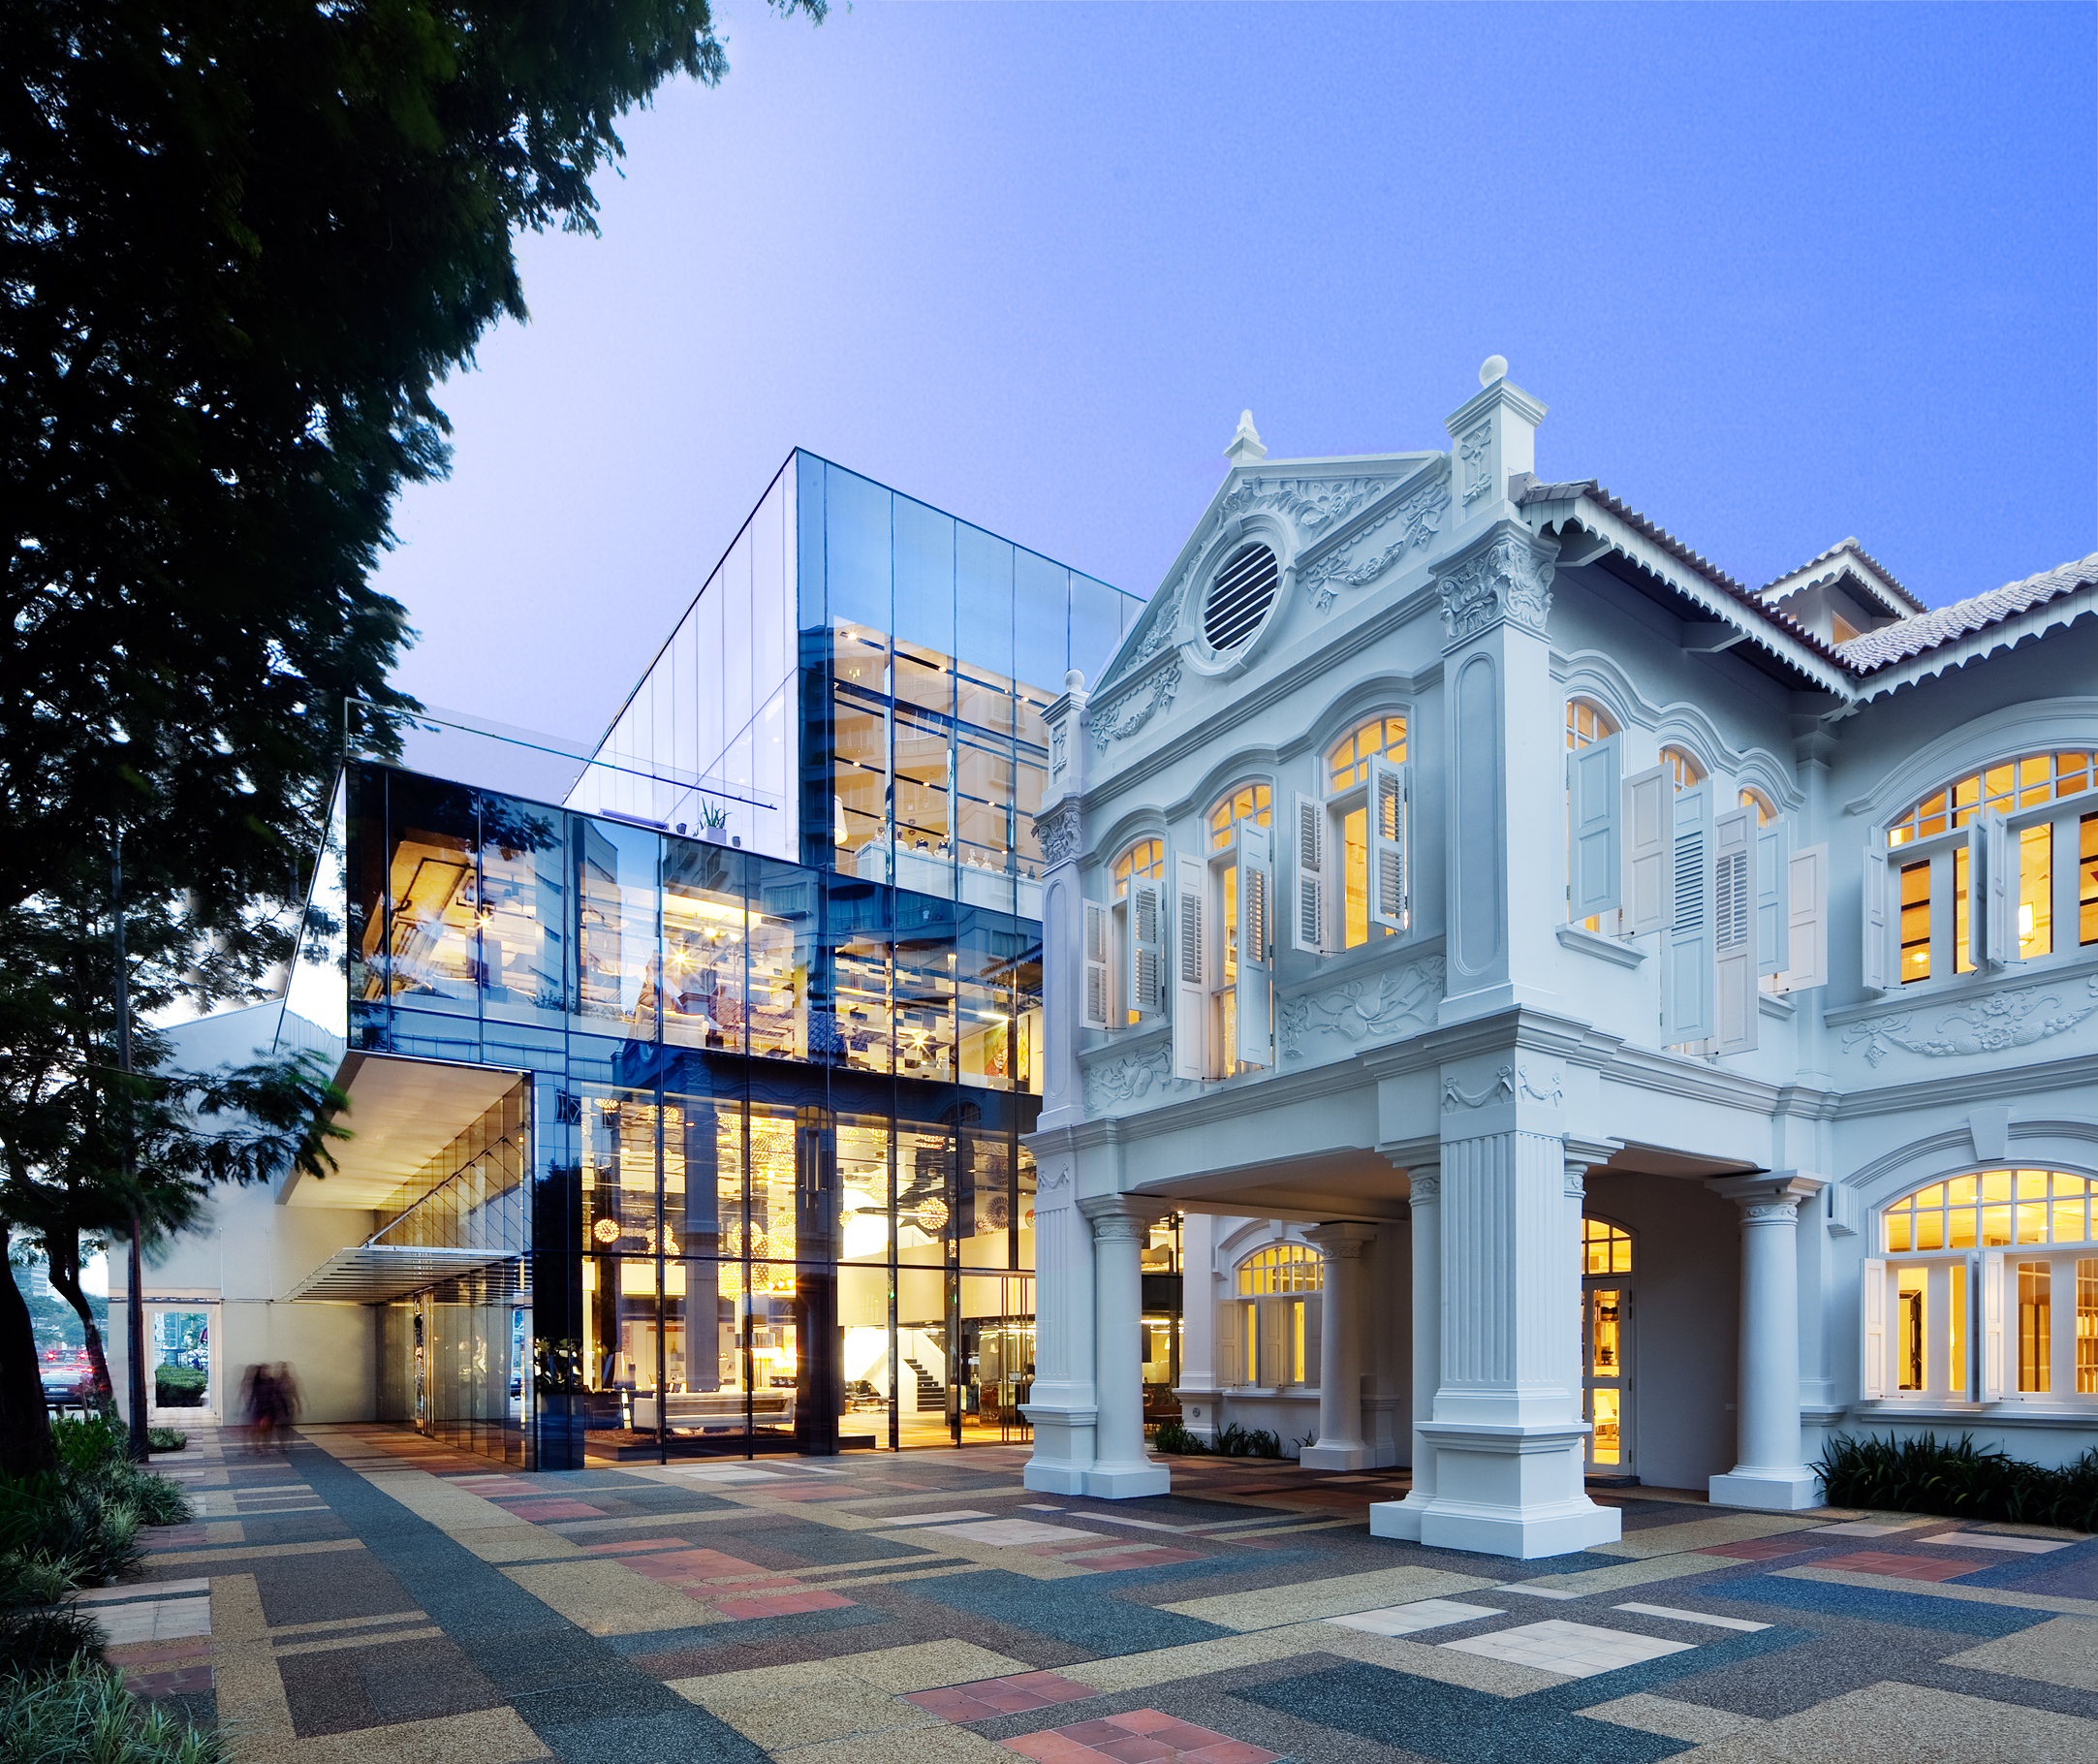 Designed by WOHA and located within Singapore's Arts and Heritage District, Space Asia Hub is housed within a unique cluster of heritage buildings.